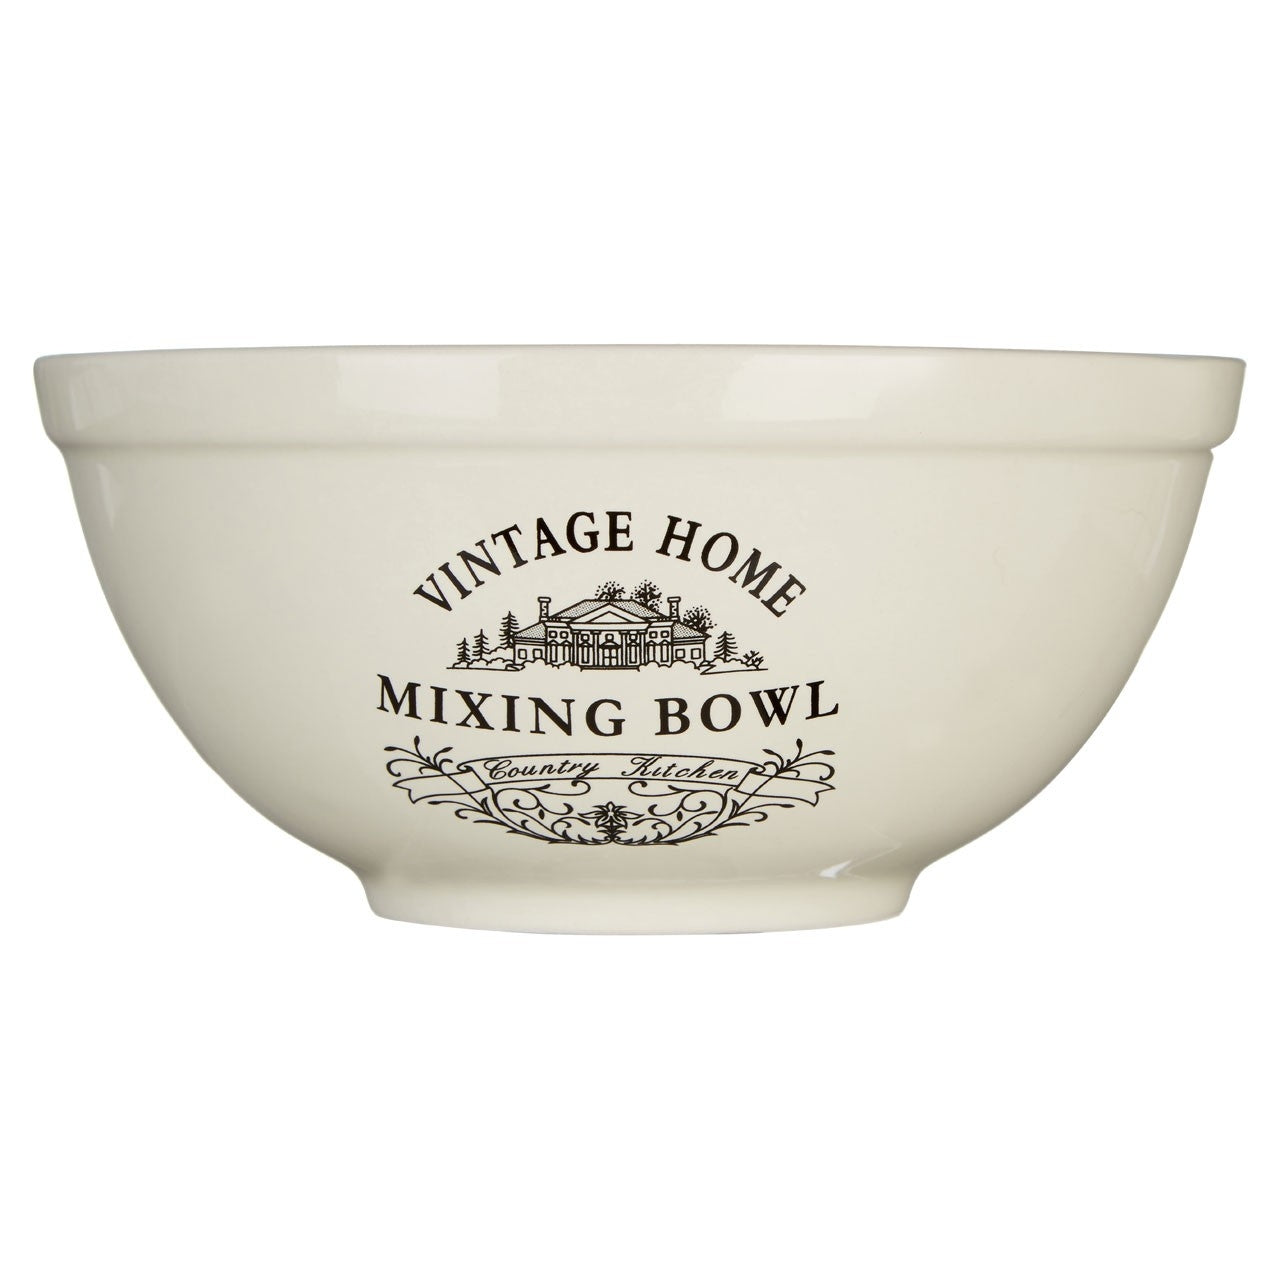 Vintage Home Mixing Bowl